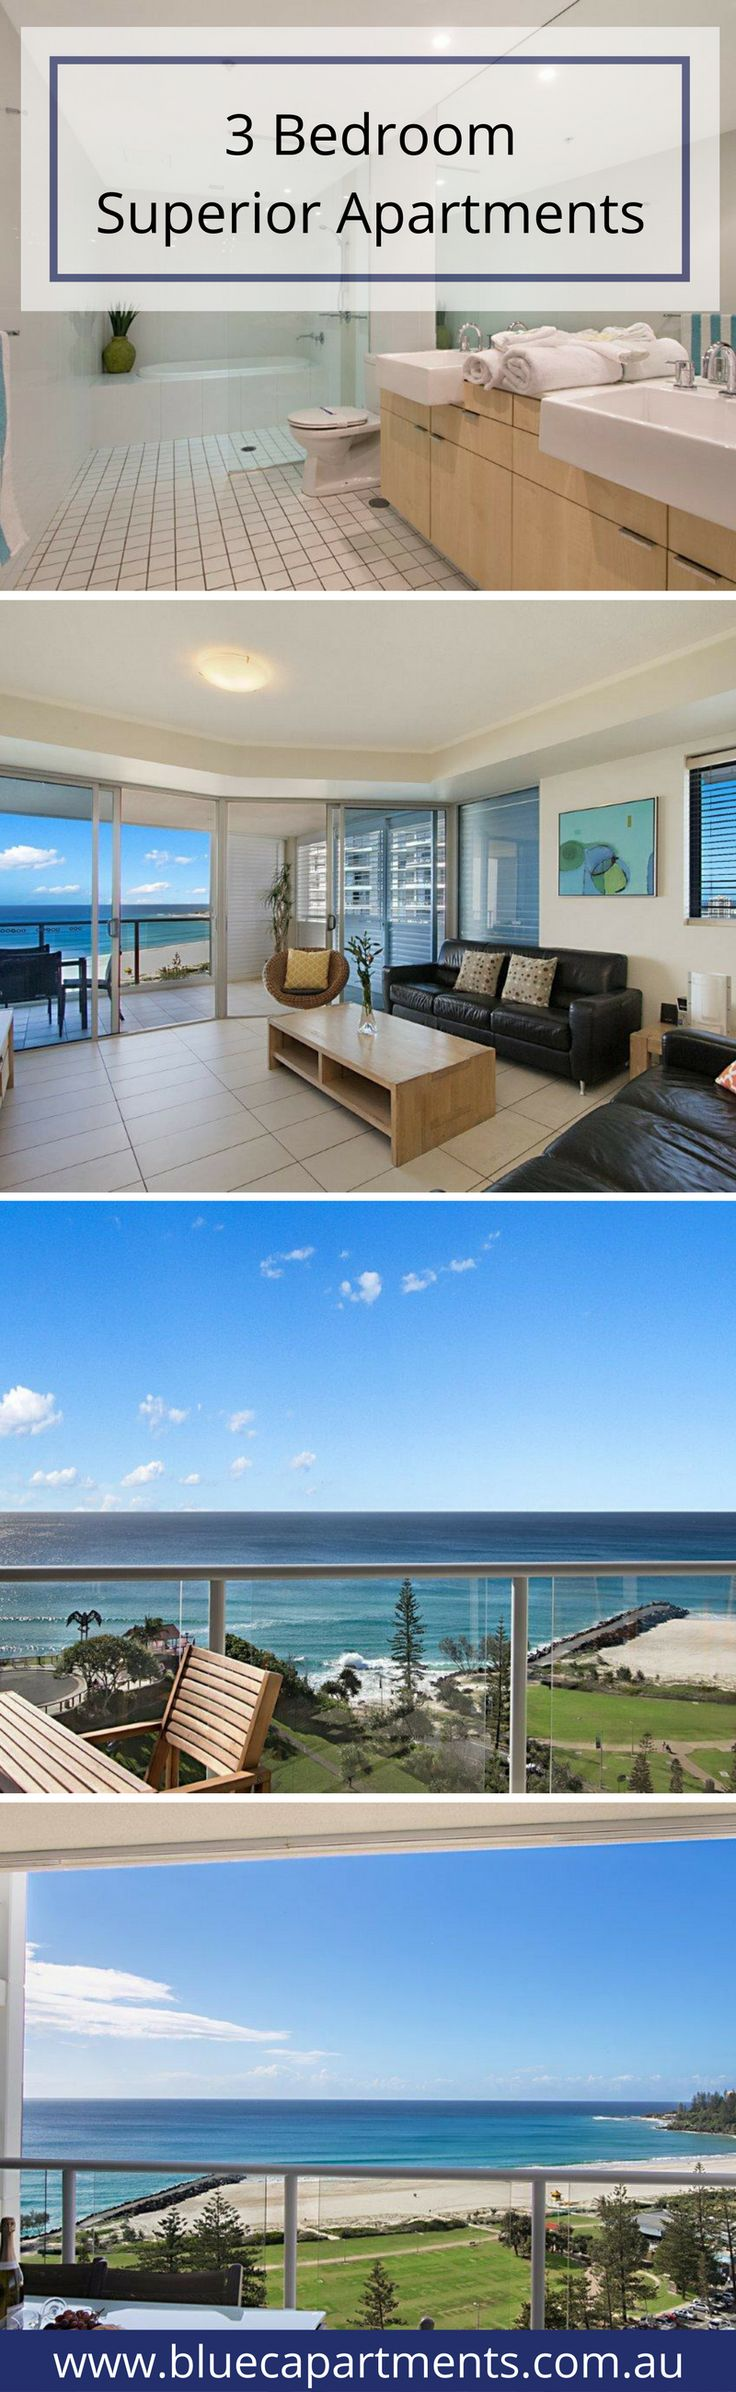 Whether you are here for a weekend, a week, or longer, you will find your Blue C apartment the perfect home away from home to relax, enjoy and explore the features our world-class southern Gold Coast location has to offer. CLICK here for more info http://bluecapartments.com.au/3-bedroom-apartment-coolangatta/ | Blue C Apartments Coolangatta Beach | Australia's Gold Coast & Tweed Valley